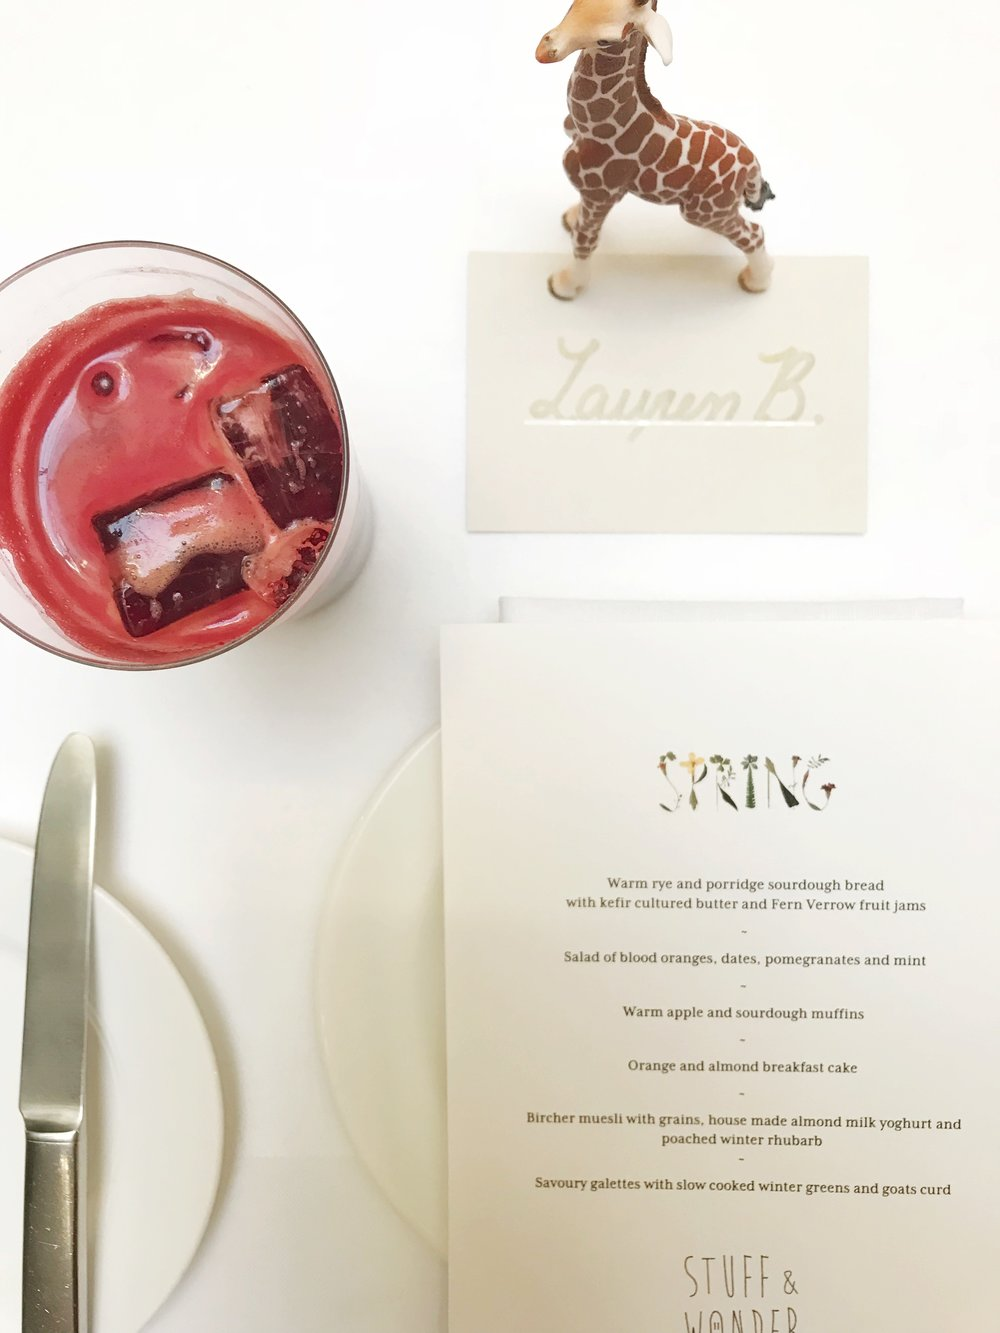 spring-somerset-house-menu.JPG